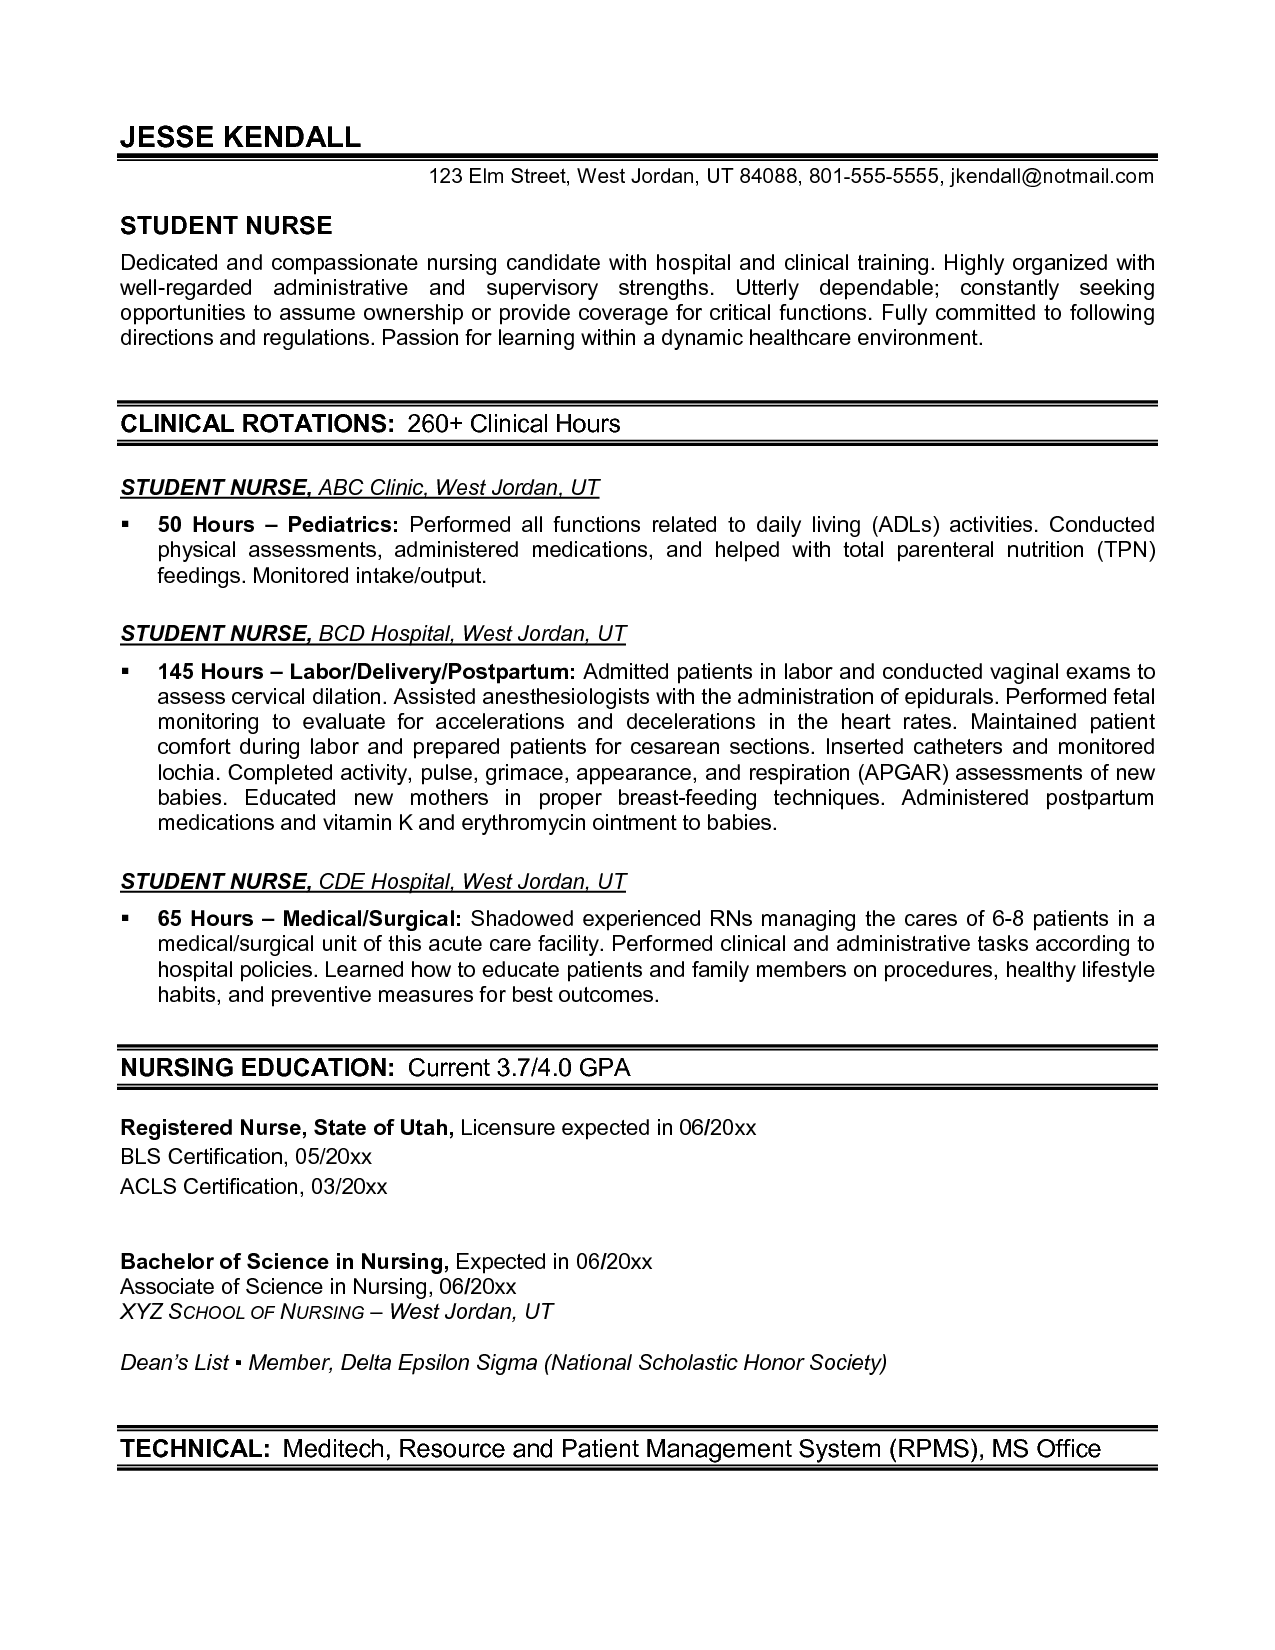 Resume Template For Nursing Resume Template Nursing  Nursing  Pinterest  Nursing Resume